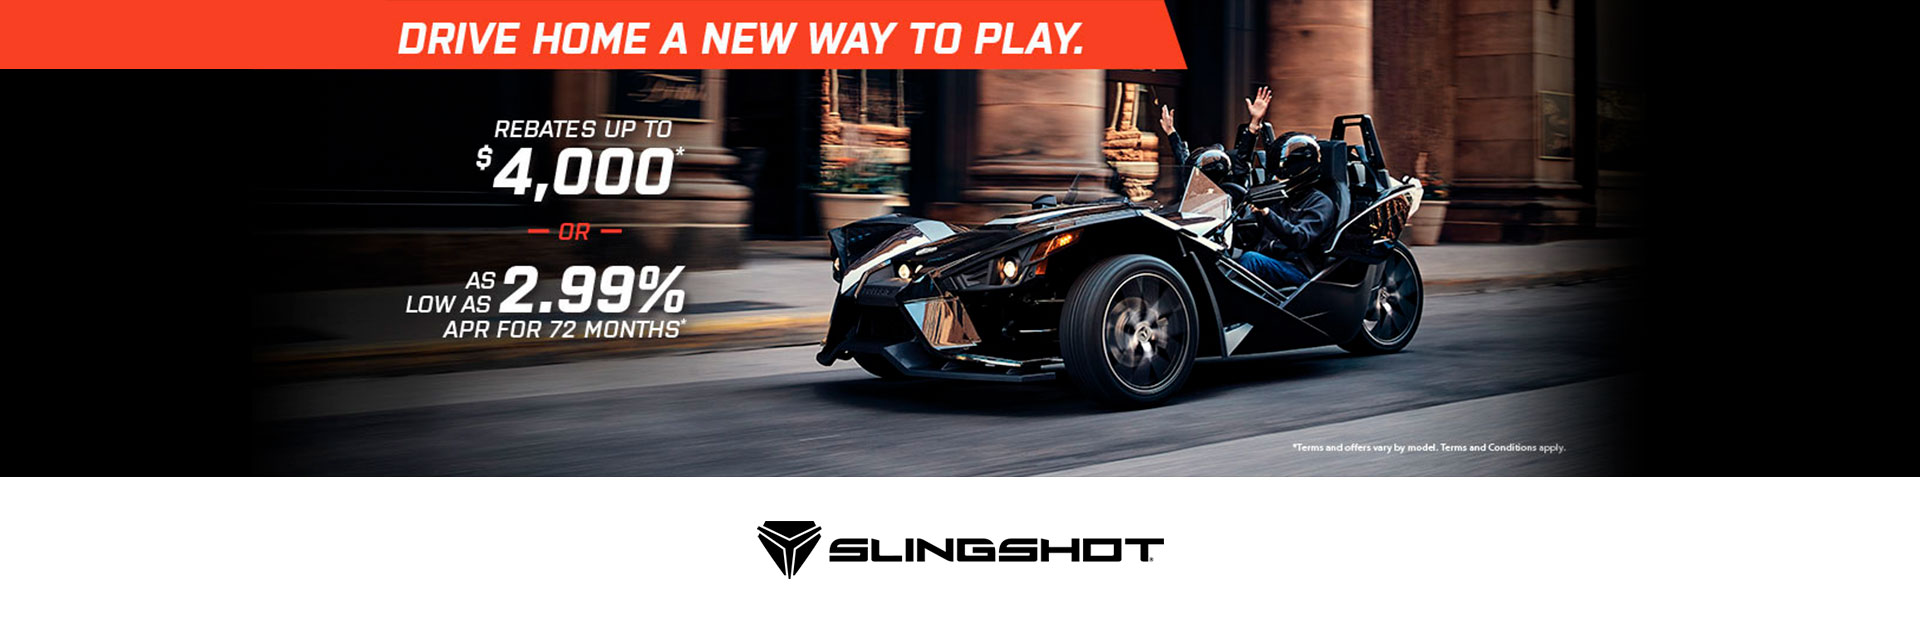 Slingshot: Slingshot - Drive Home A New Way To Play